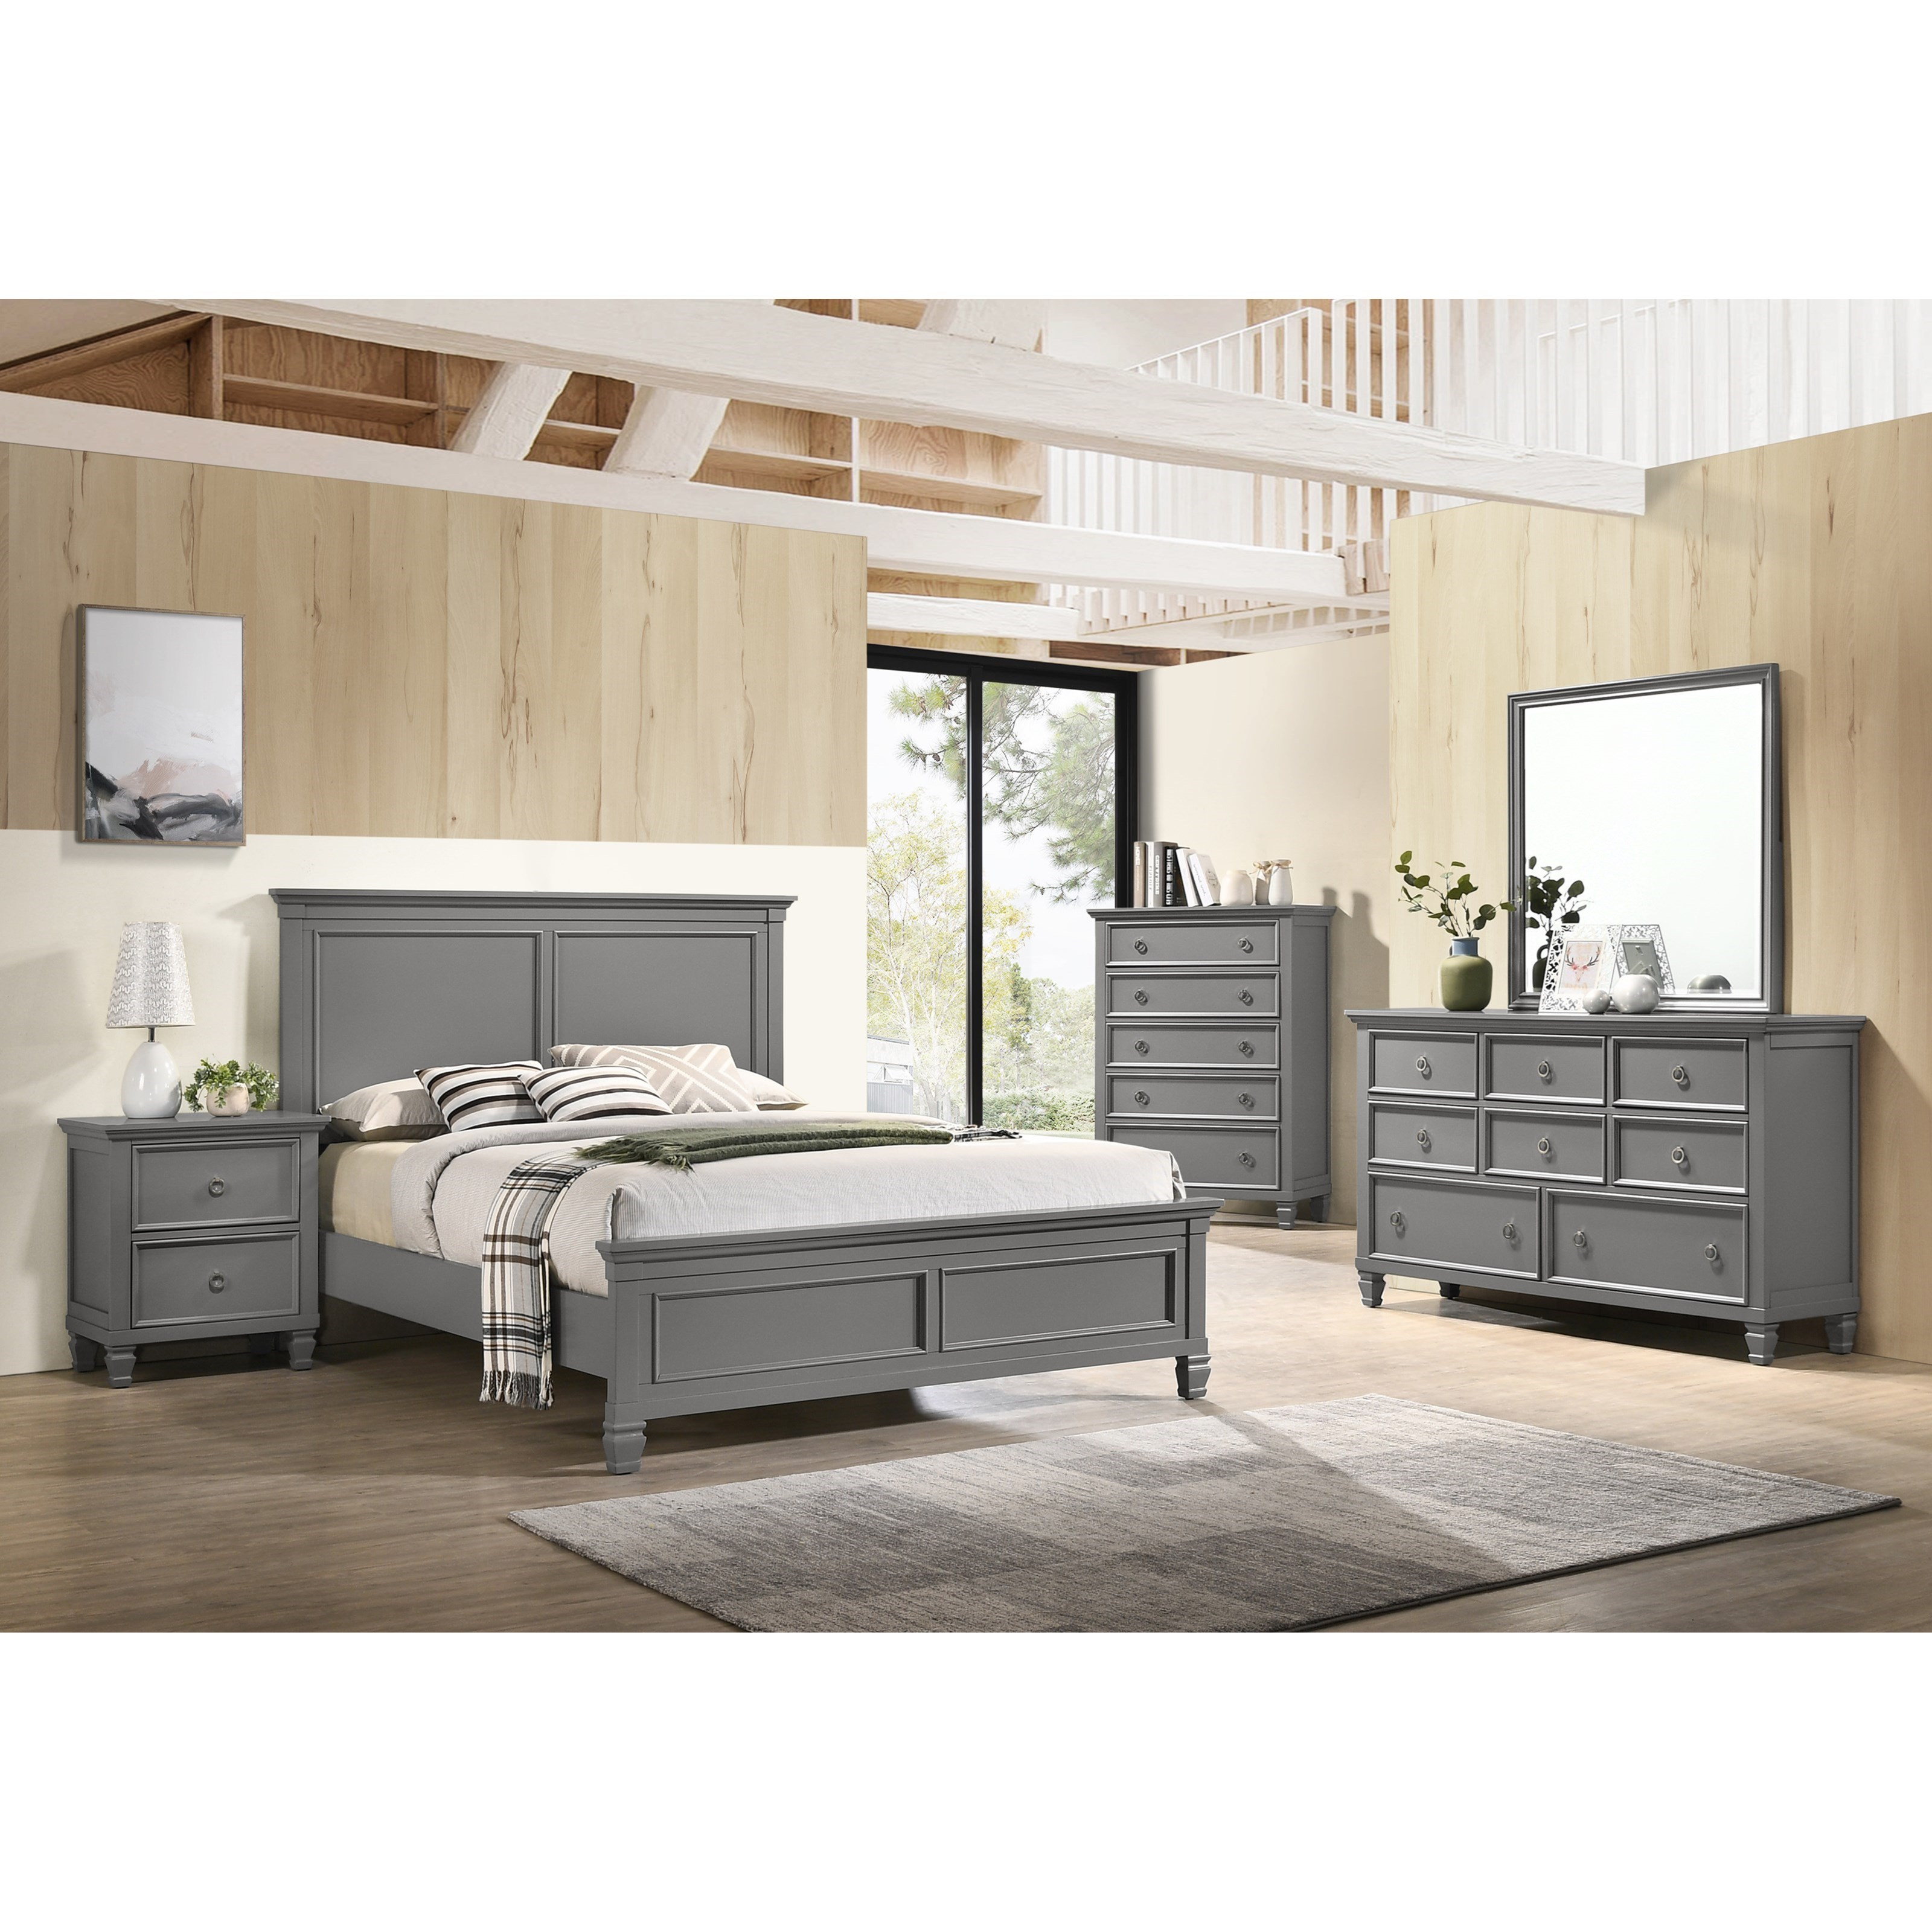 Tamarack Full Bedroom Group  by New Classic at Beds N Stuff